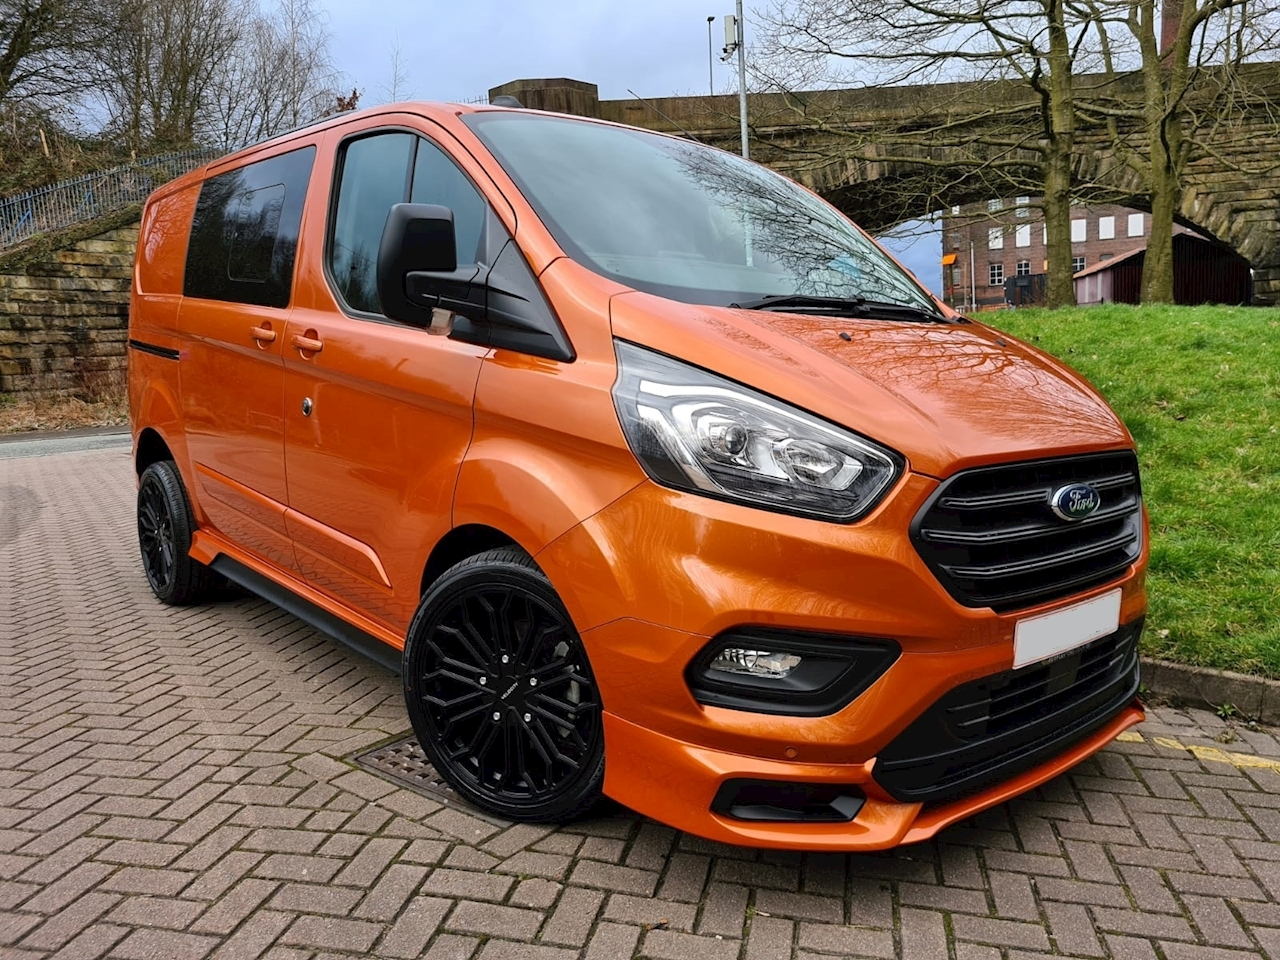 New 2021 Ford Transit Custom 320 Limited Dciv L1 H1 2 0 Panel Van Automatic Diesel For Sale In Greater Manchester V2l Limited